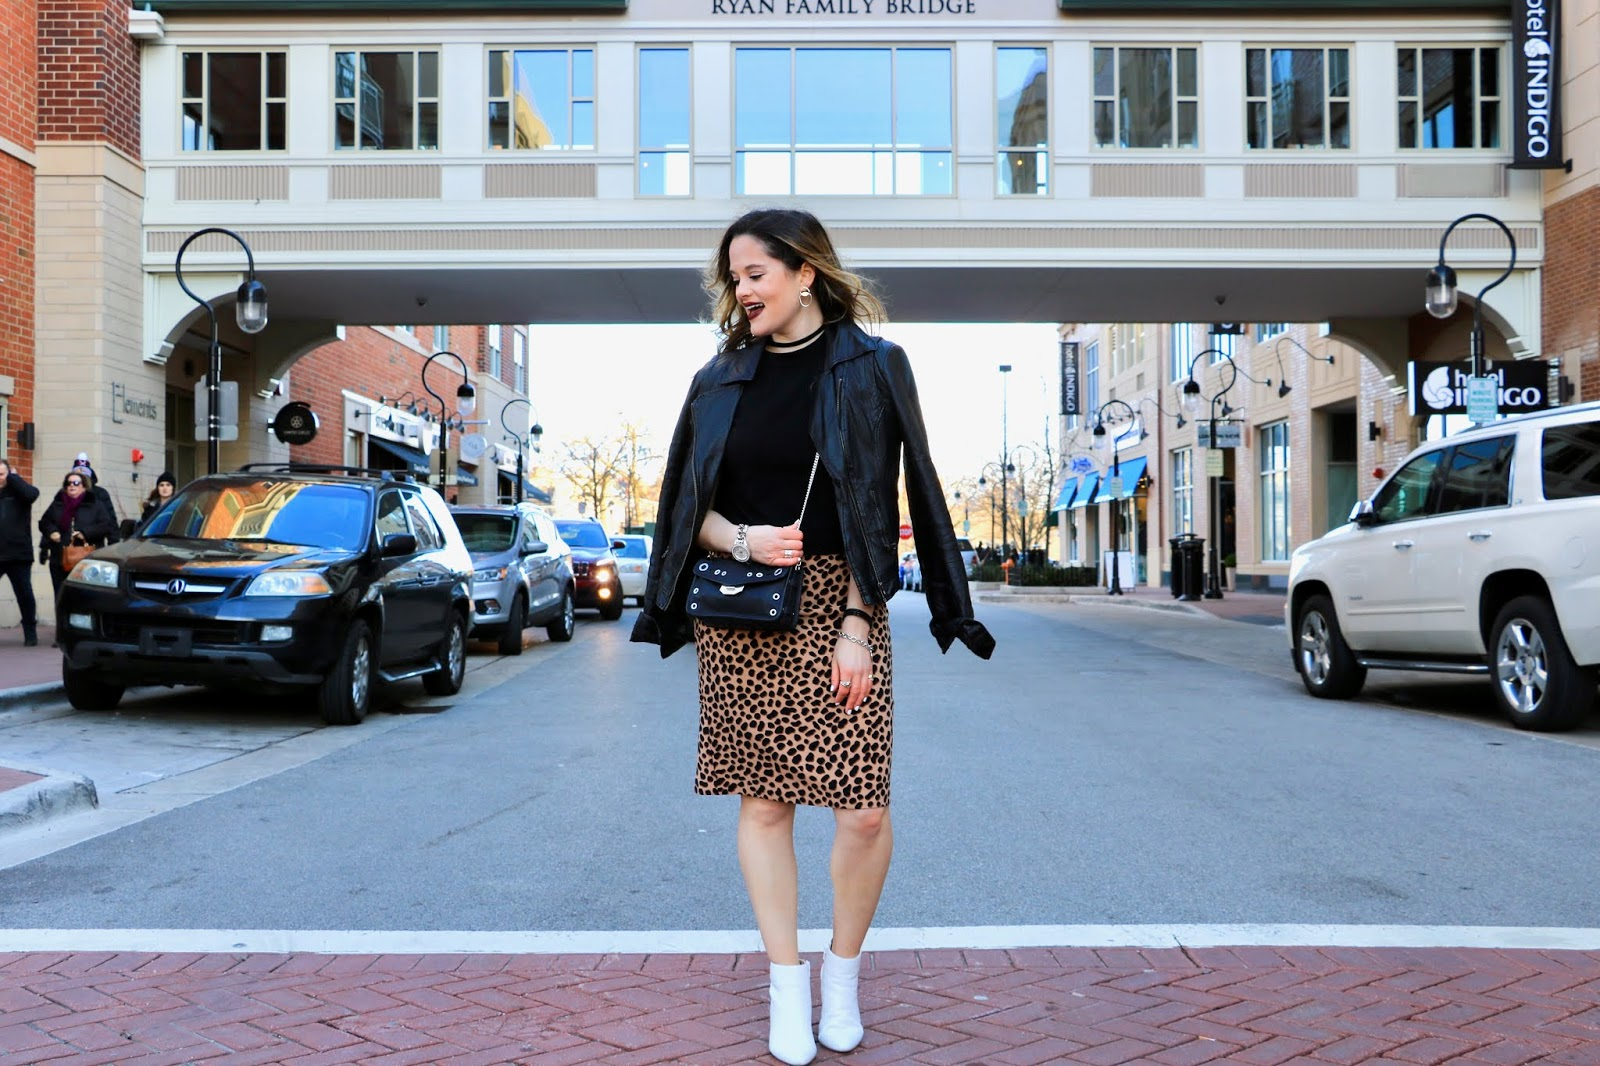 Nyc fashion blogger Kathleen Harper's spring outfits